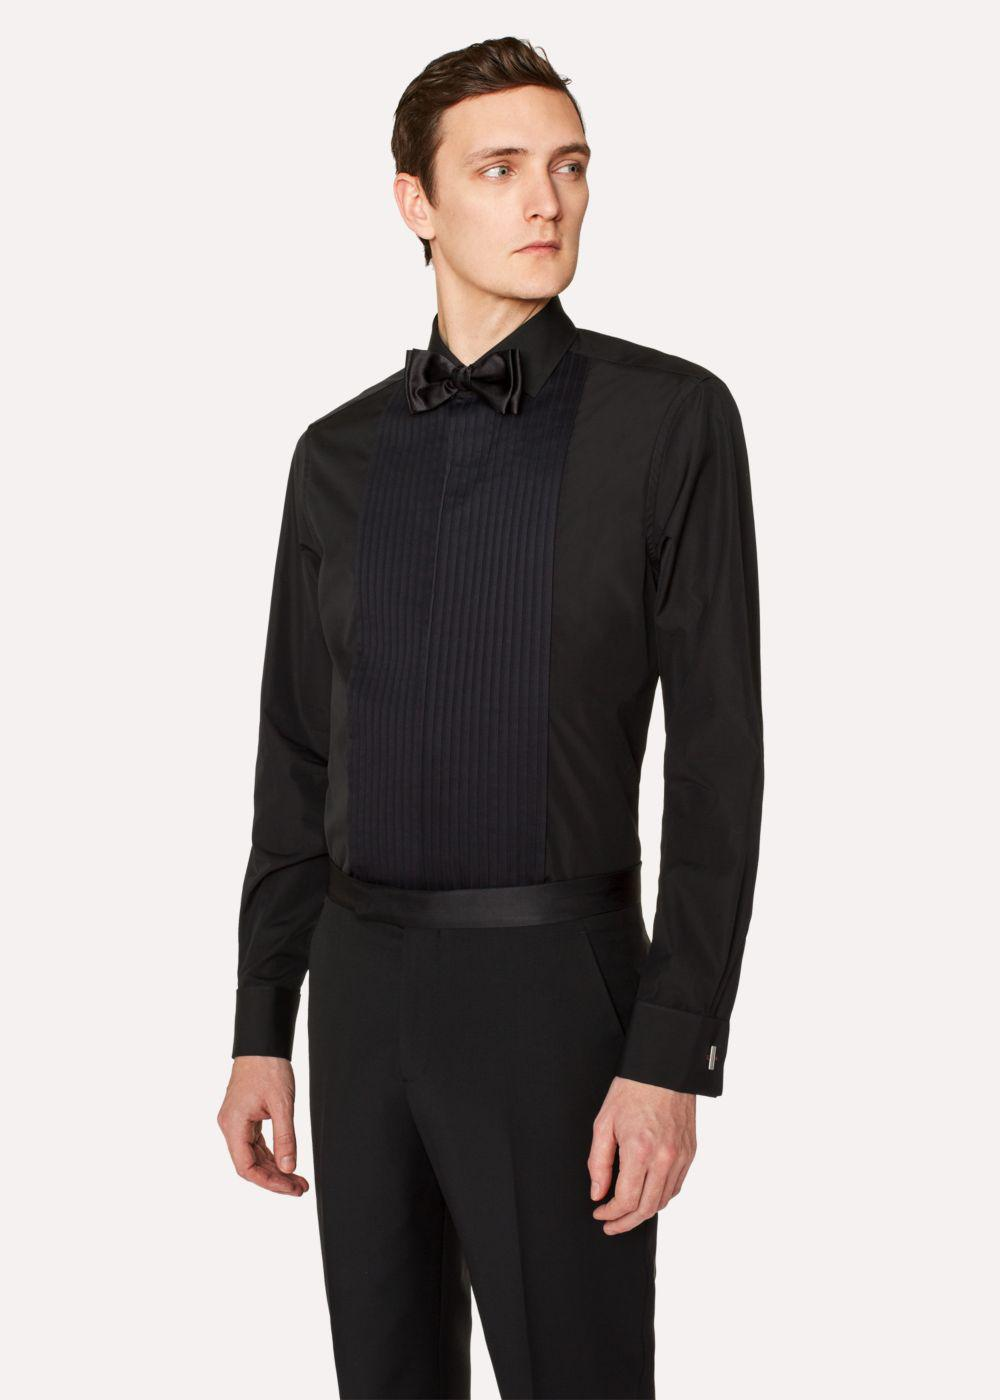 Paul smith men 39 s tailored fit black pleat front cotton for Mens dress shirts with cufflink holes